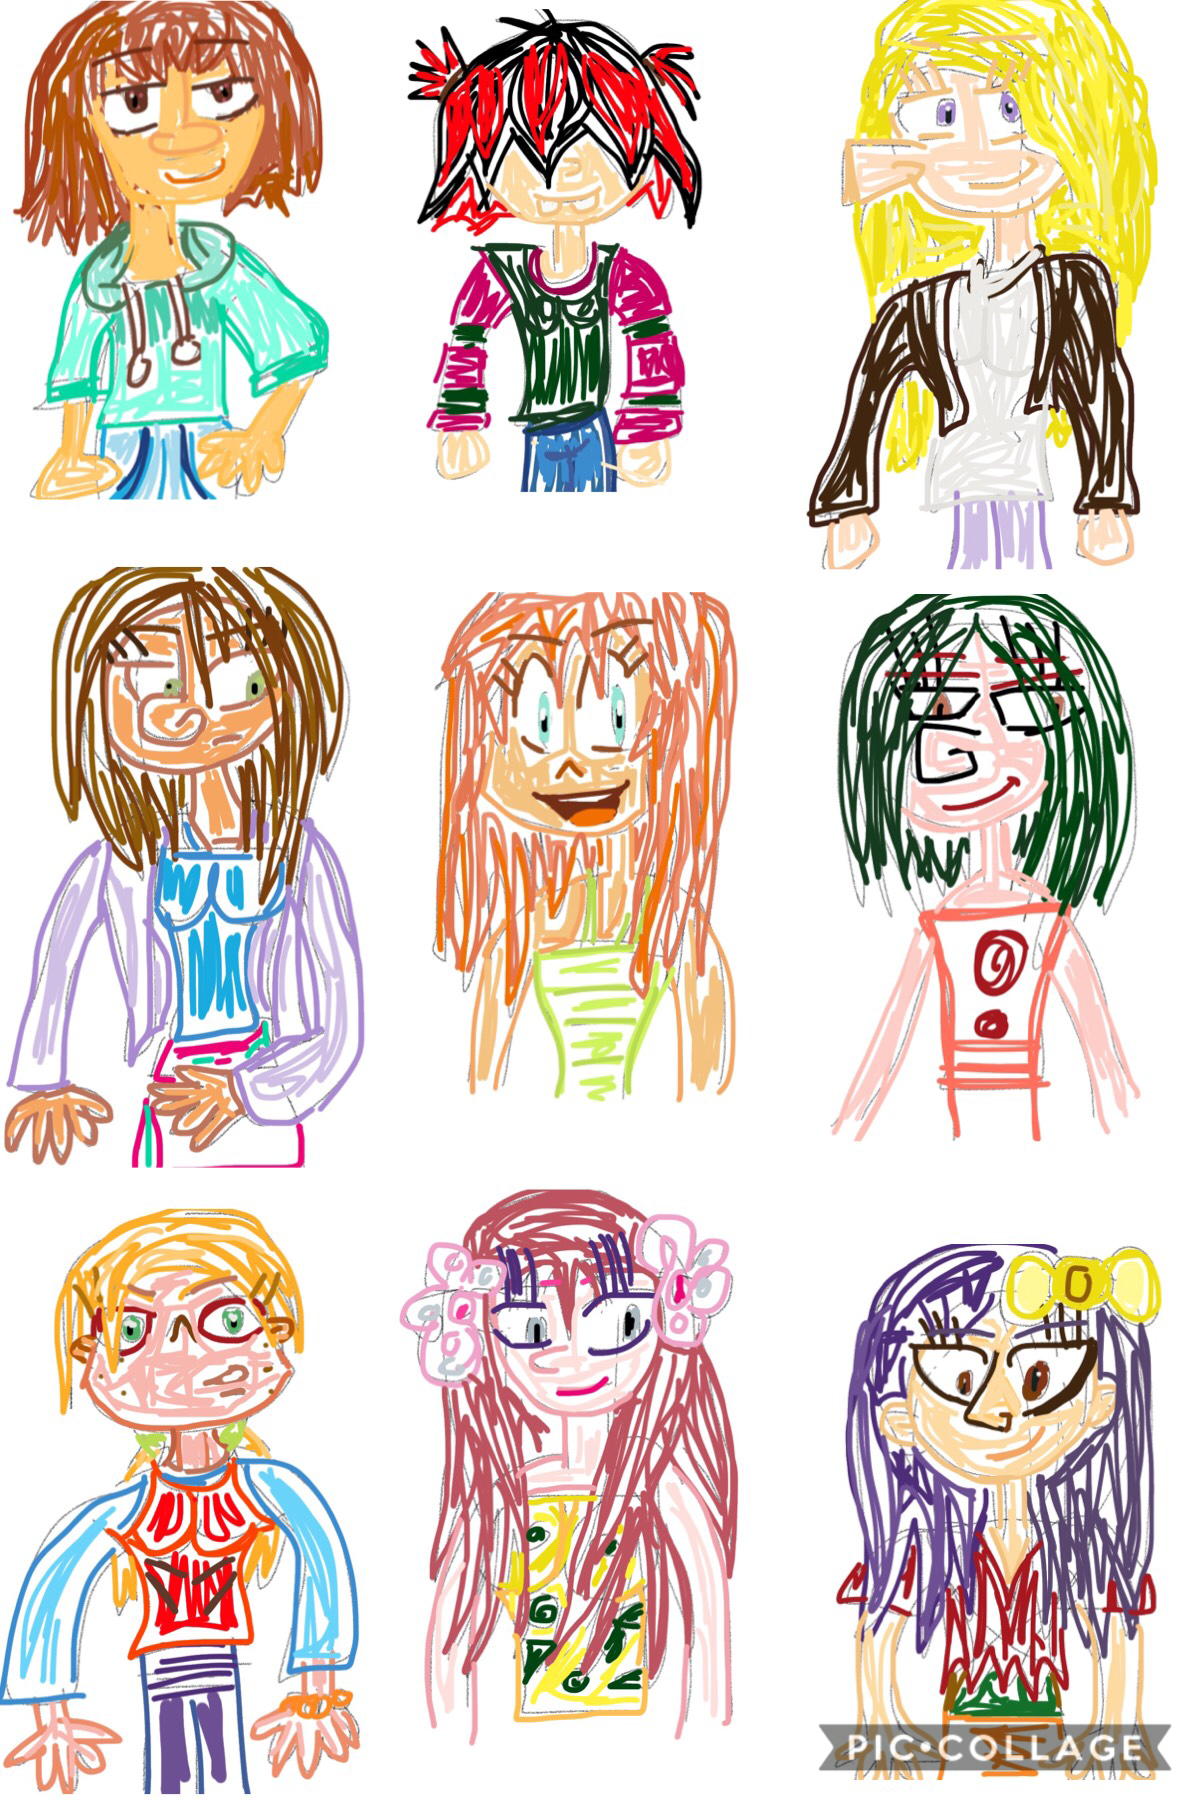 Sony's George of the jungle: the movie presents the first nine girls! Stef, Fella, Erin, Rina, Hester, Therese, Aggie, Magnolia and Ursula.